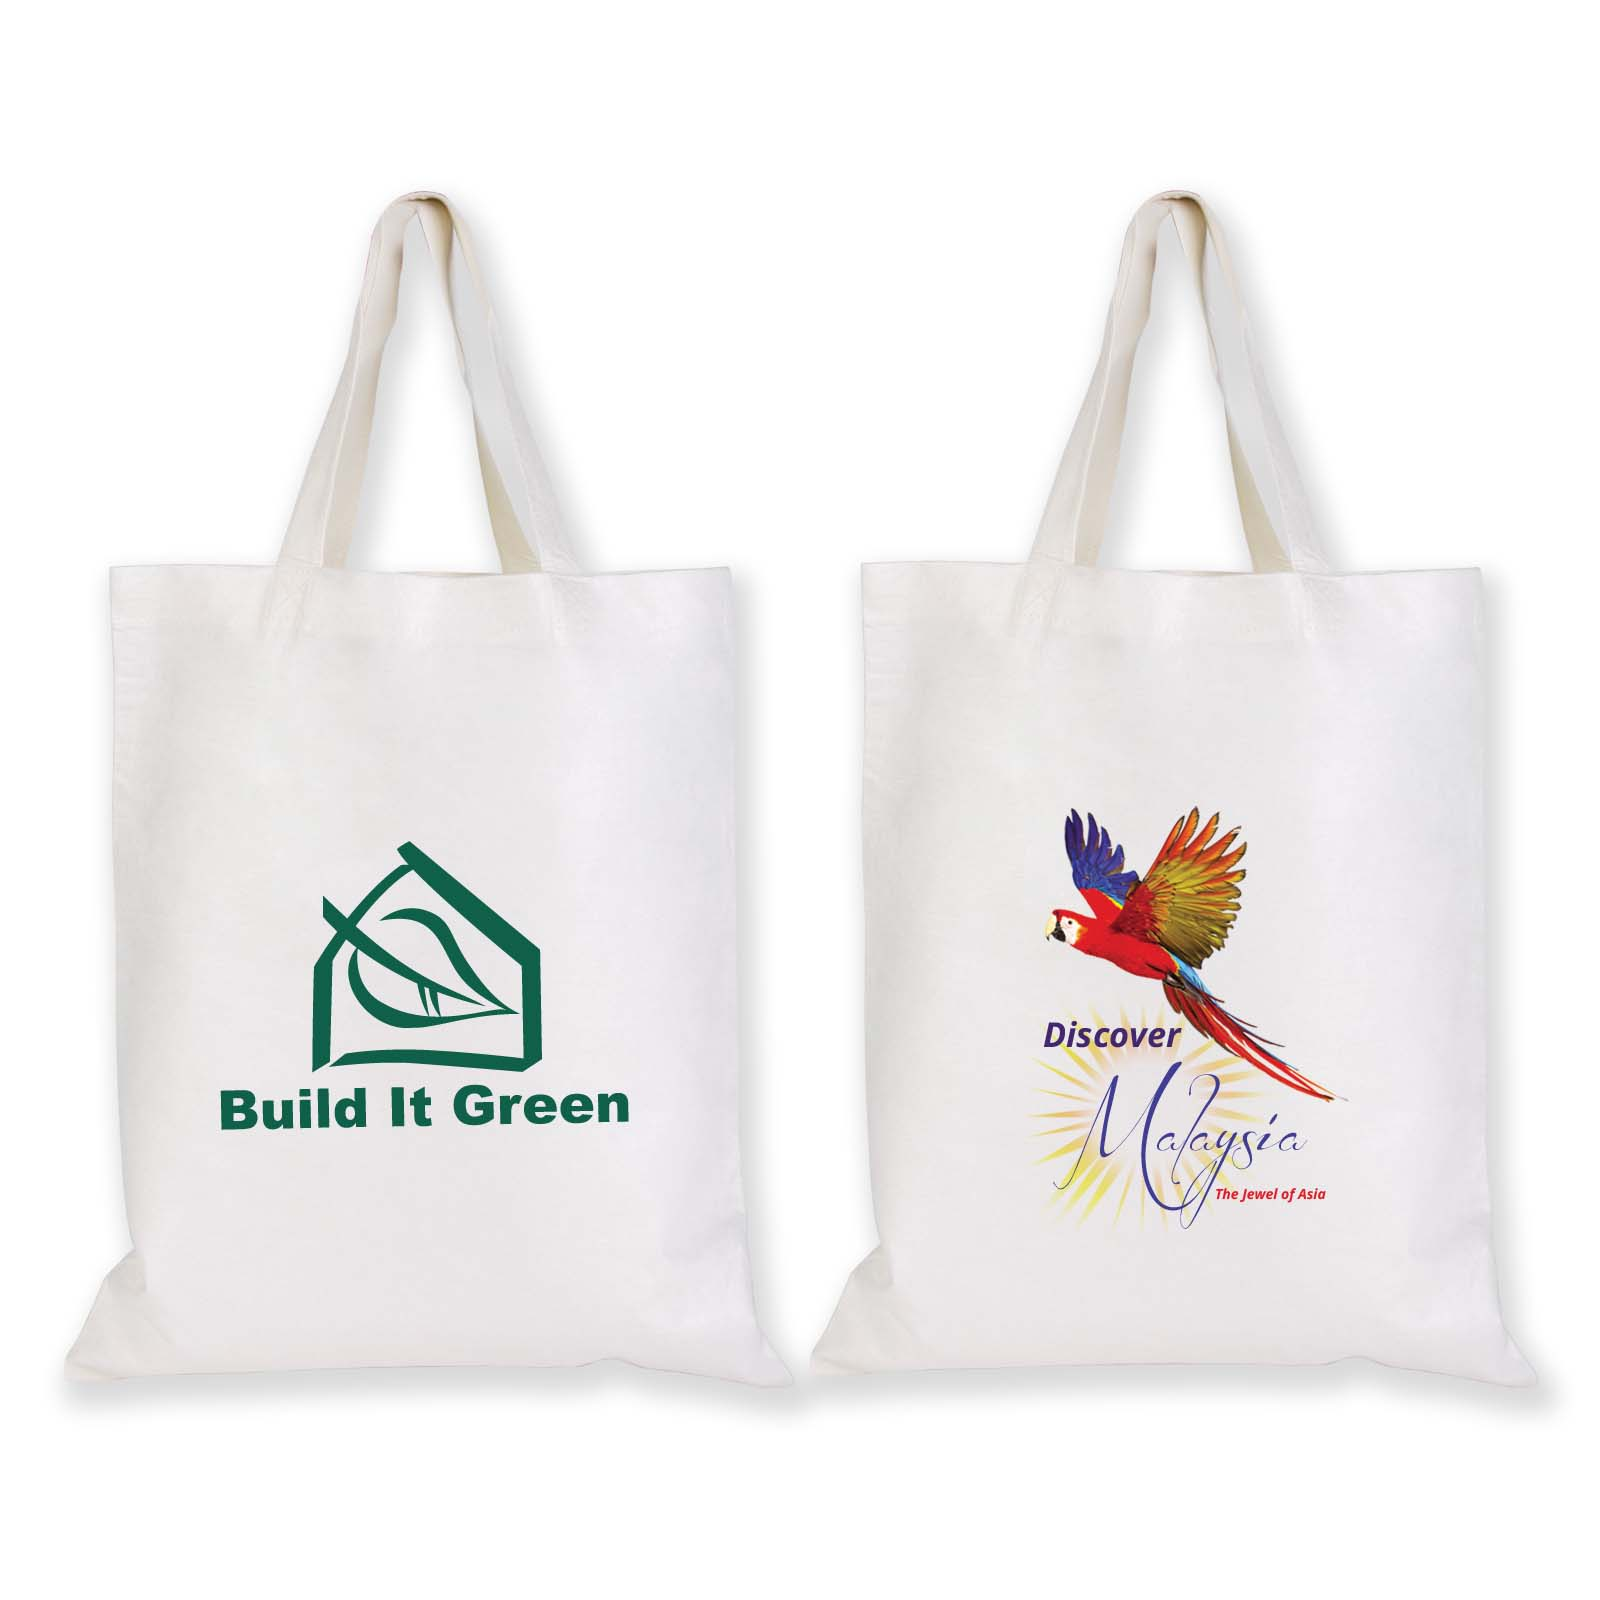 Short Handle Bamboo Tote Bag - 100 GSM - Includes a 1 colour printed logo